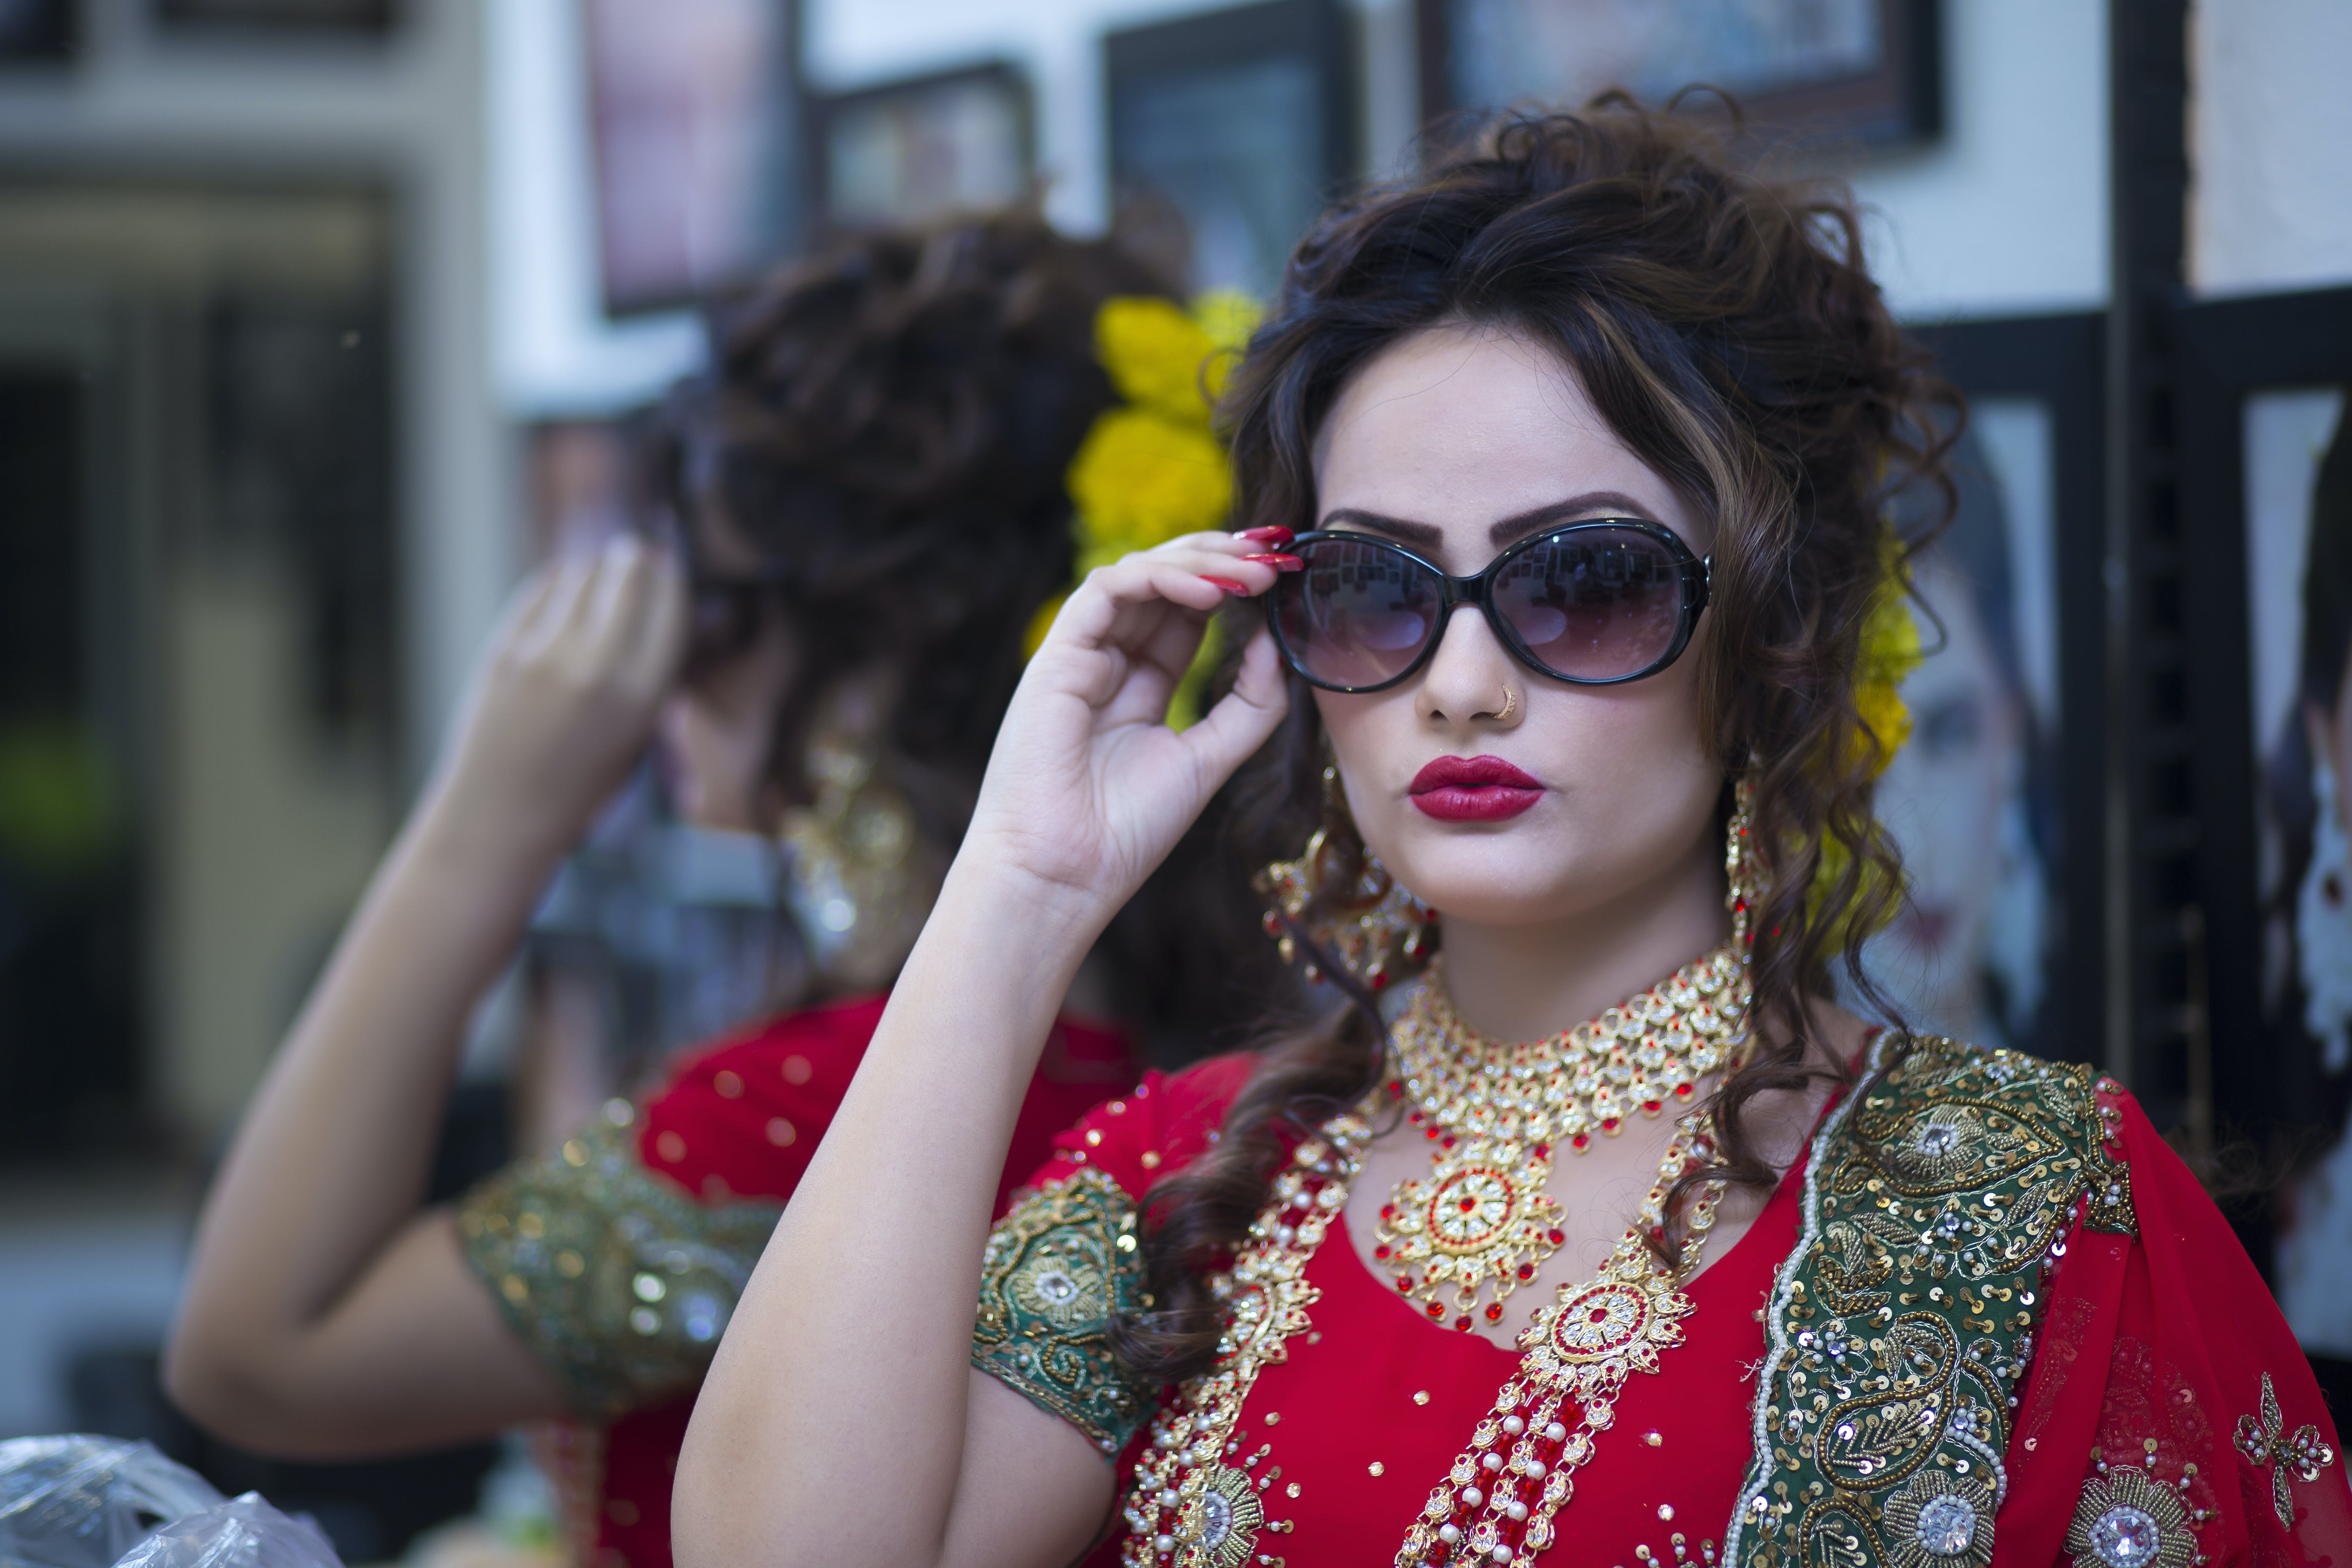 Woman Wearing Red Dress Holding Her Black Framed Sunglasses